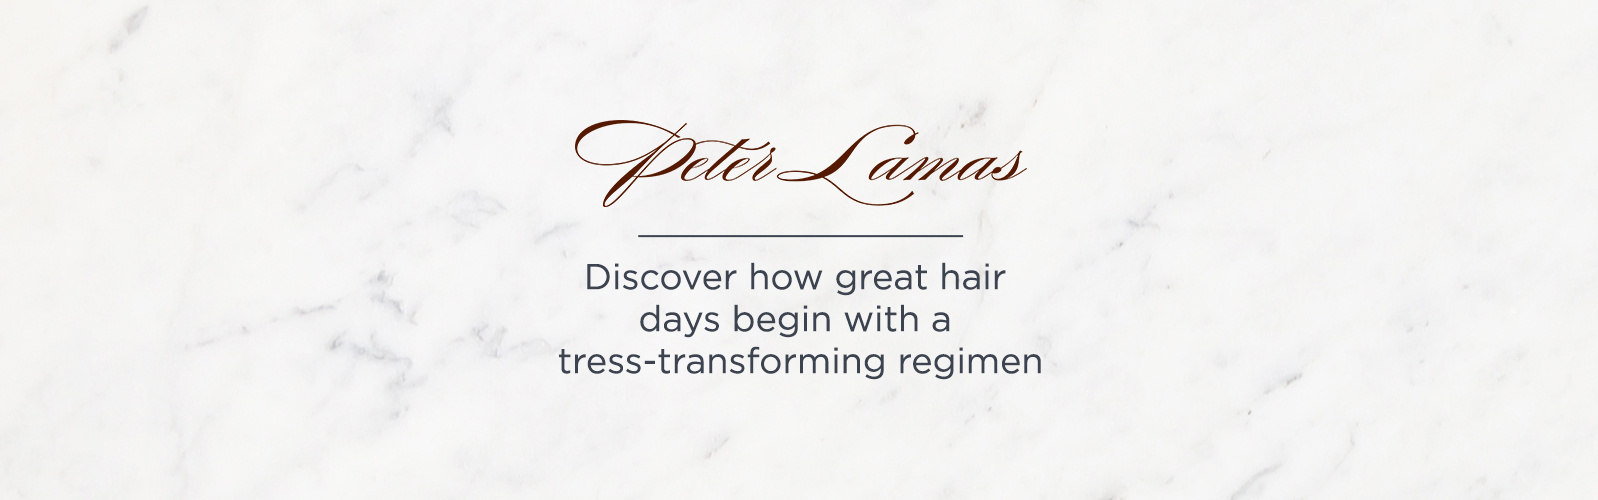 Peter Lamas Discover how great hair days begin with a tress-transforming regimen